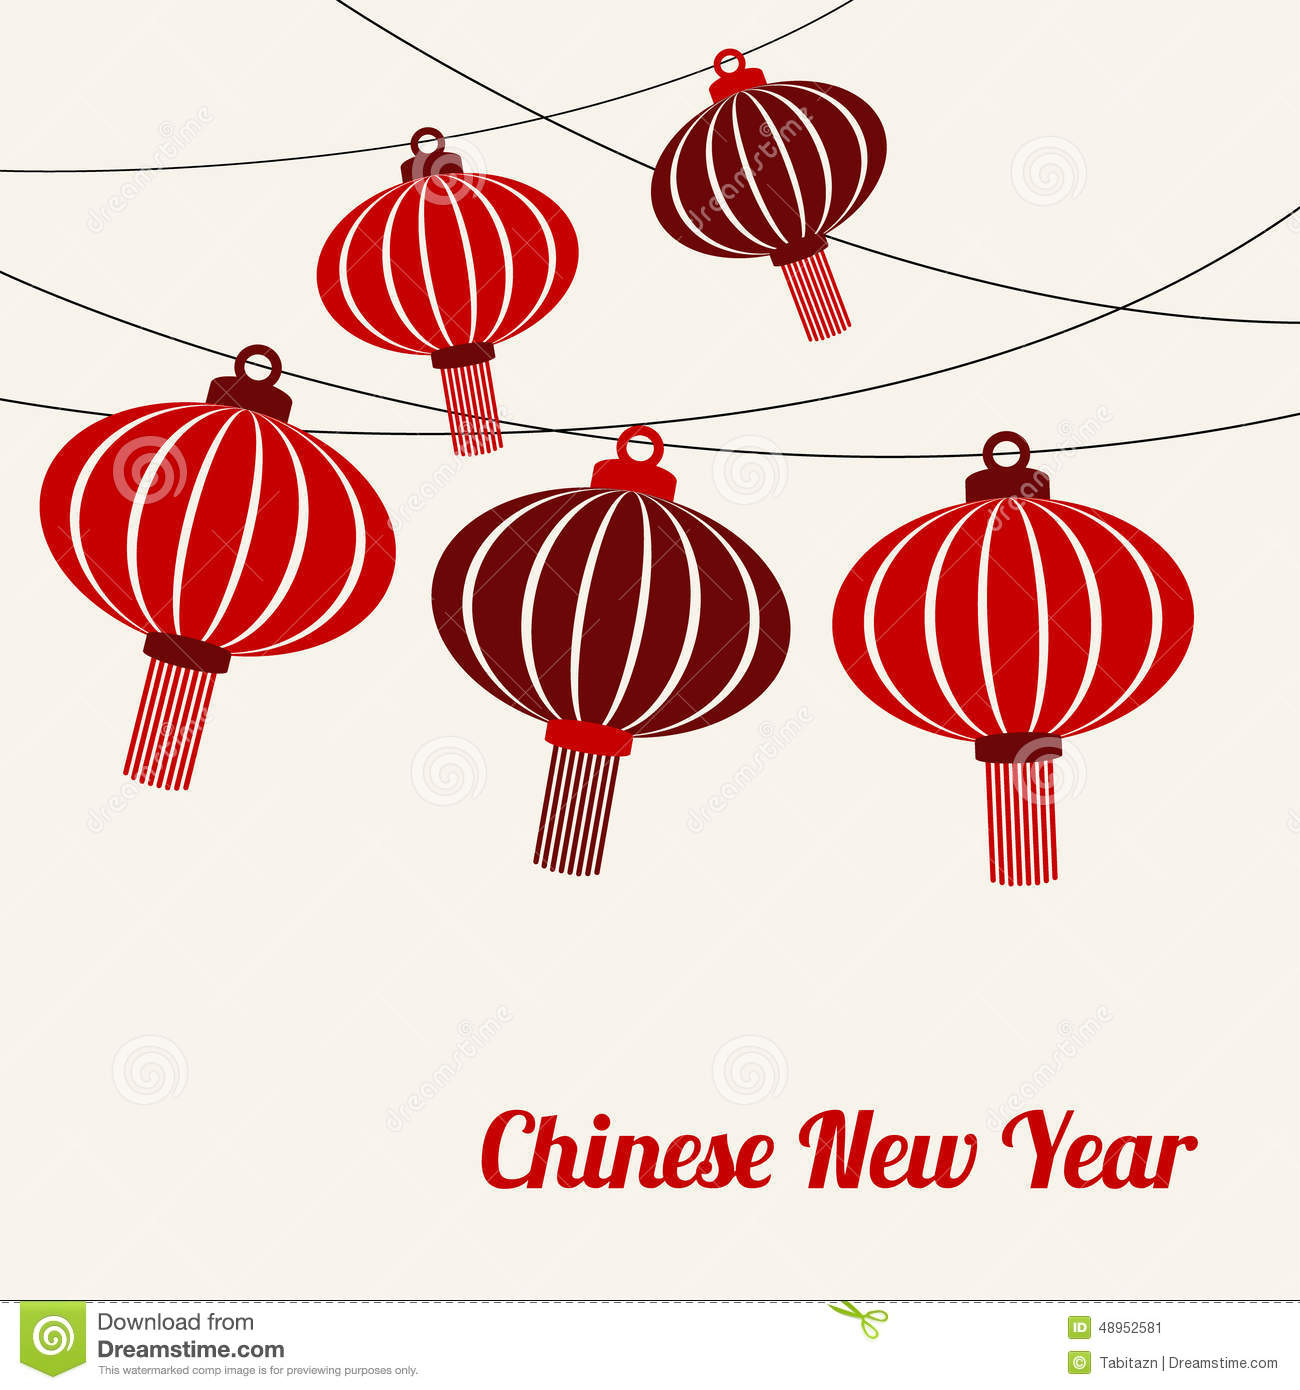 Chinese New Year Card With Garlands Of Red Lanterns, Vecto ...